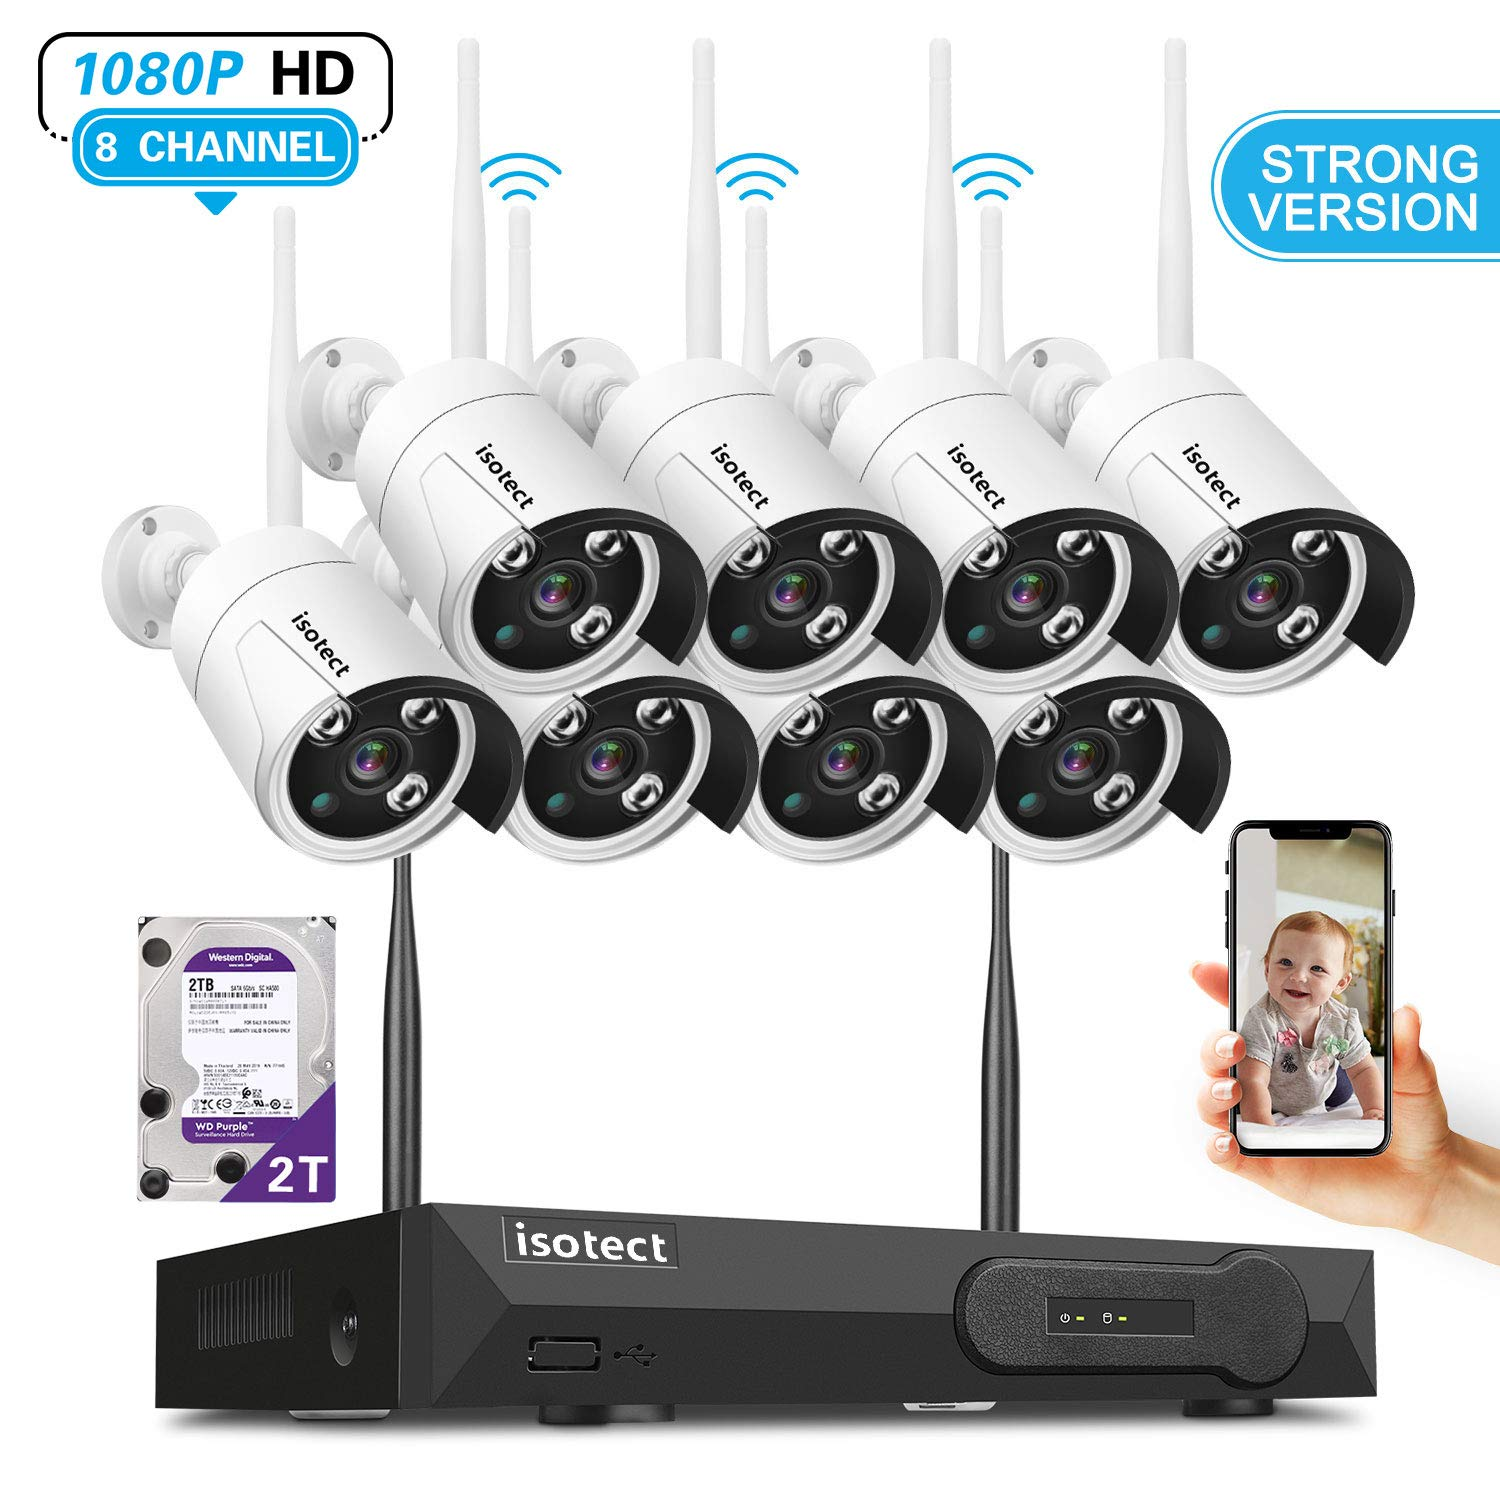 Newest Strong Version WiFi Wireless Security Camera System, ISOTECT 8CH Full HD 1080P Video Security System, 8pcs Outdoor Indoor IP Security Cameras, 65ft Night Vision and Easy Remote View, 2TB HDD